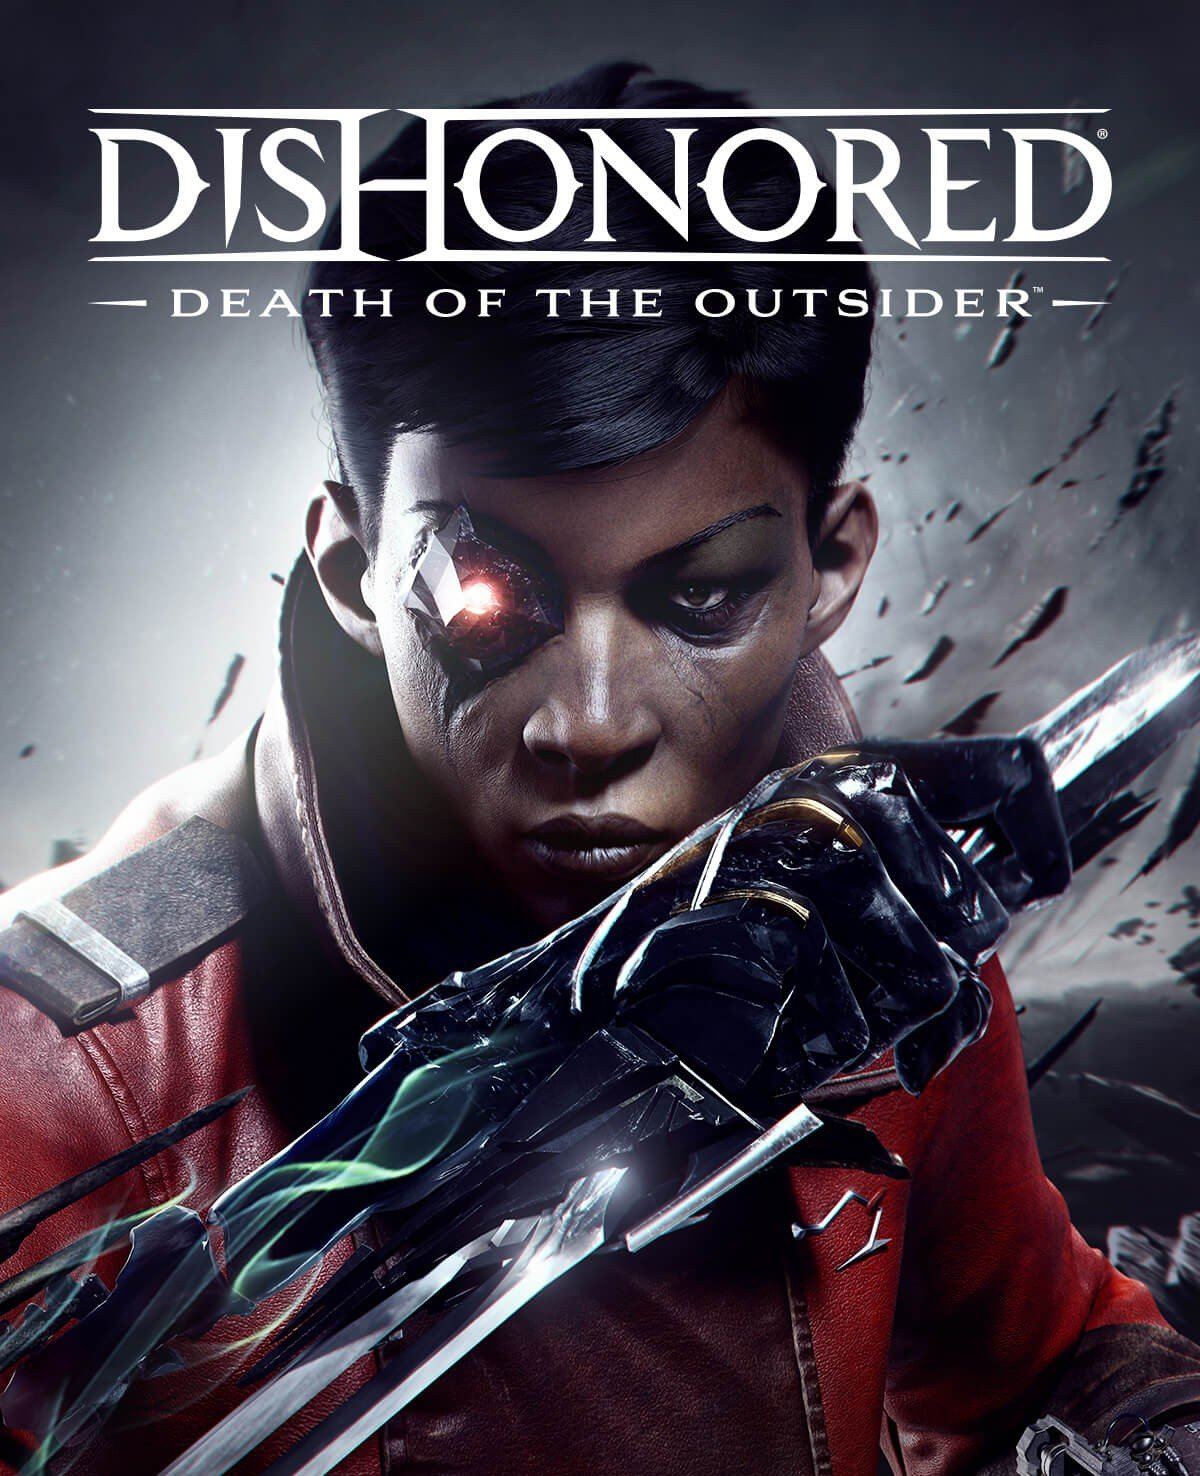 Dishonored: Death of the Outsider 羞辱:界外魔之死